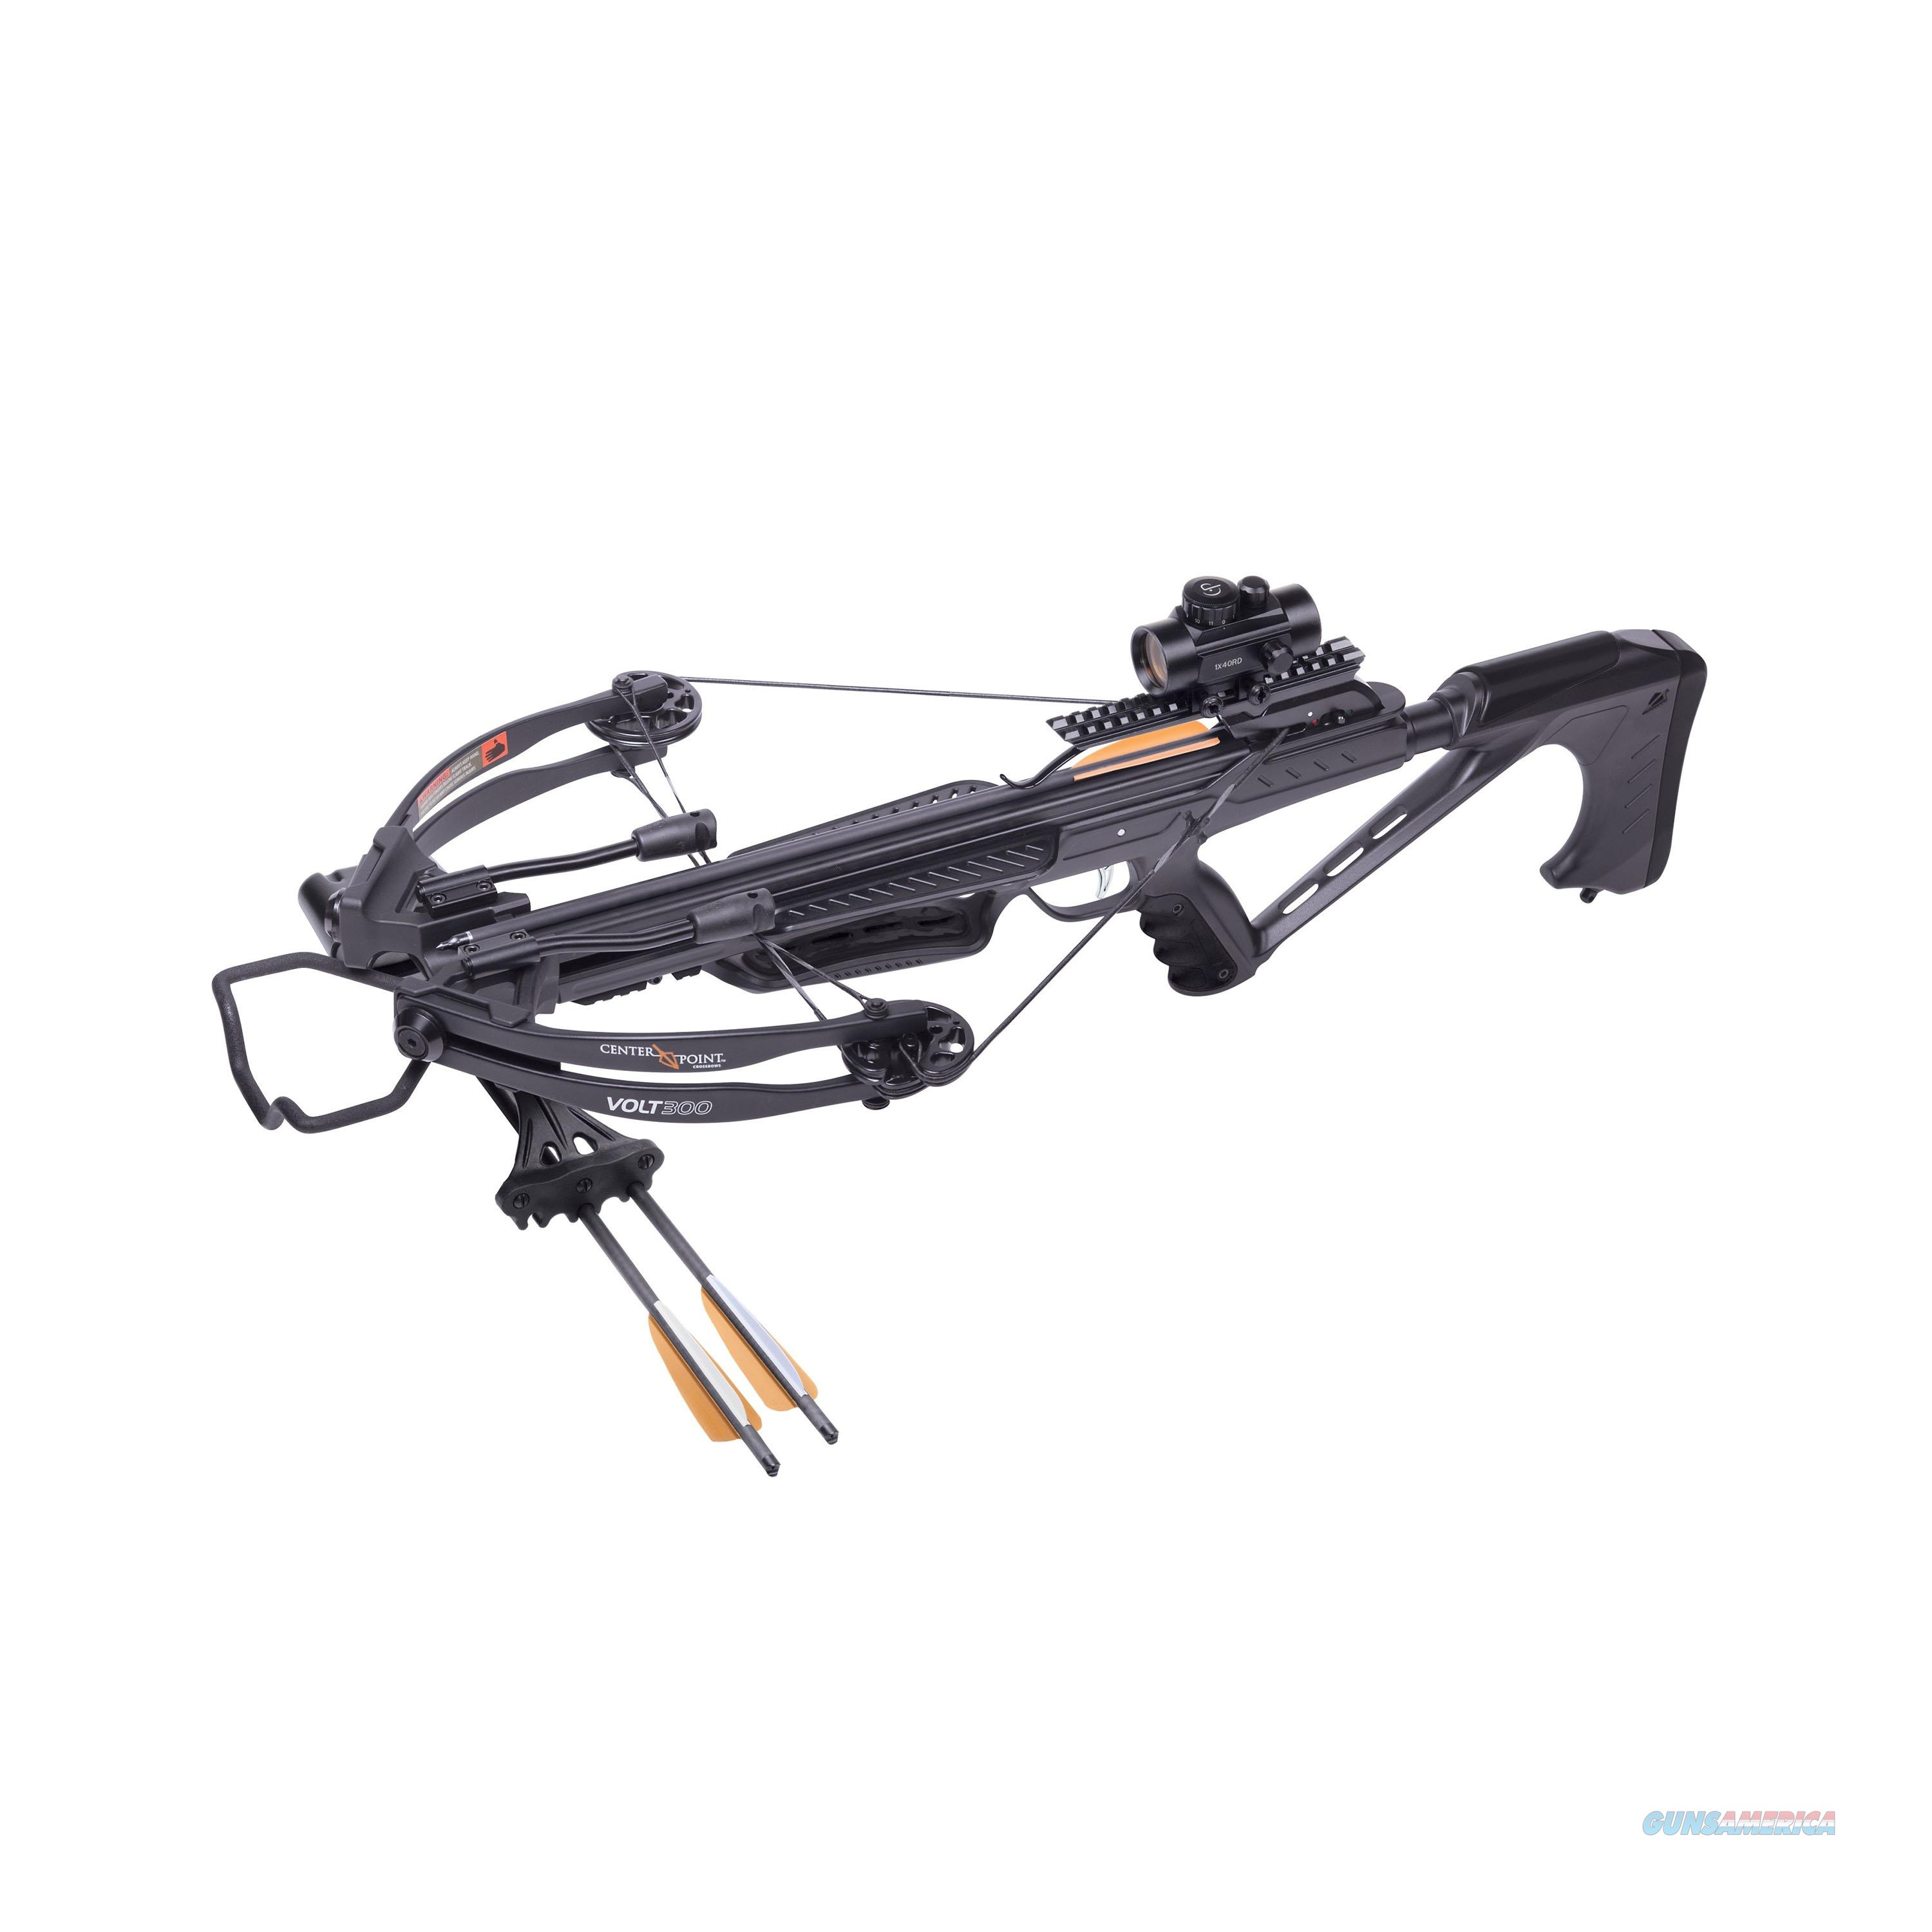 Crosman Volt 300 Low Draw Weight Compound Crossbow Package AXCV130BK  Non-Guns > Archery > Bows > Crossbows